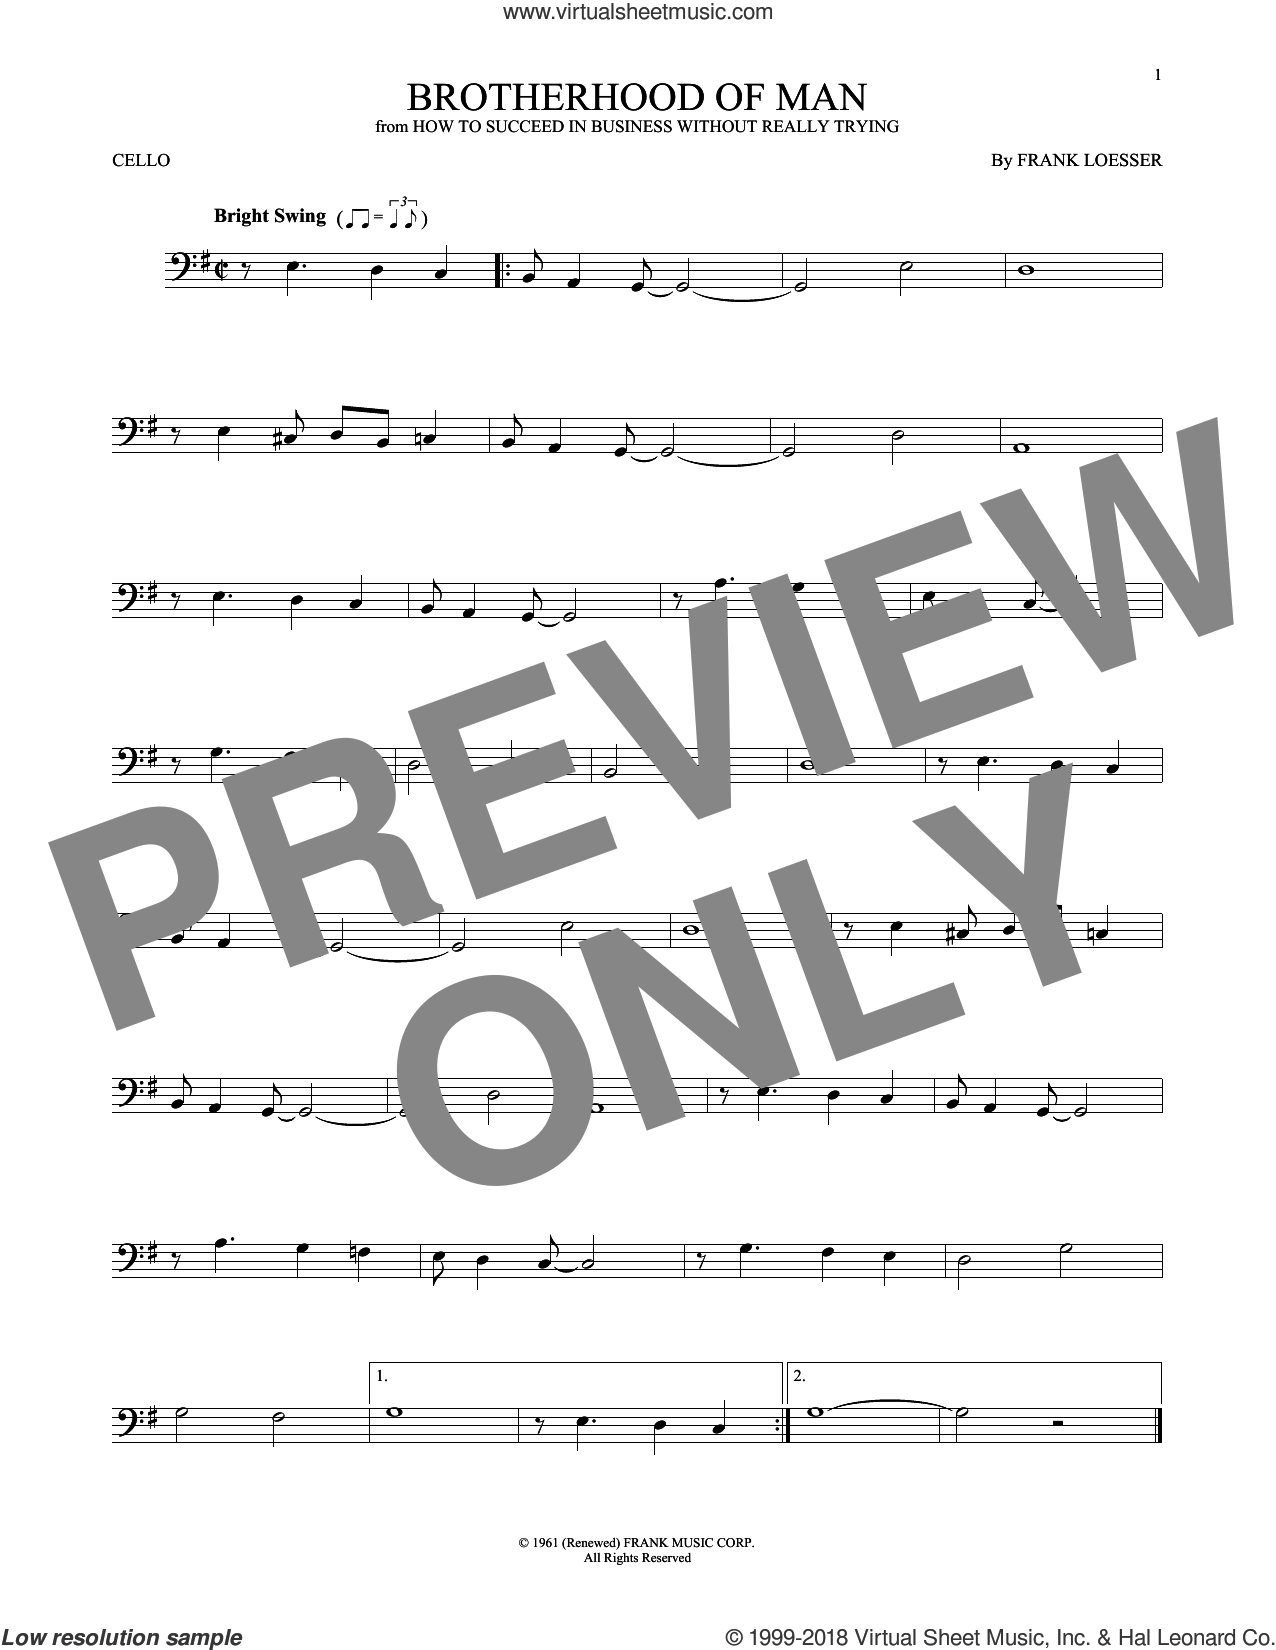 Brotherhood Of Man sheet music for cello solo by Frank Loesser, intermediate skill level